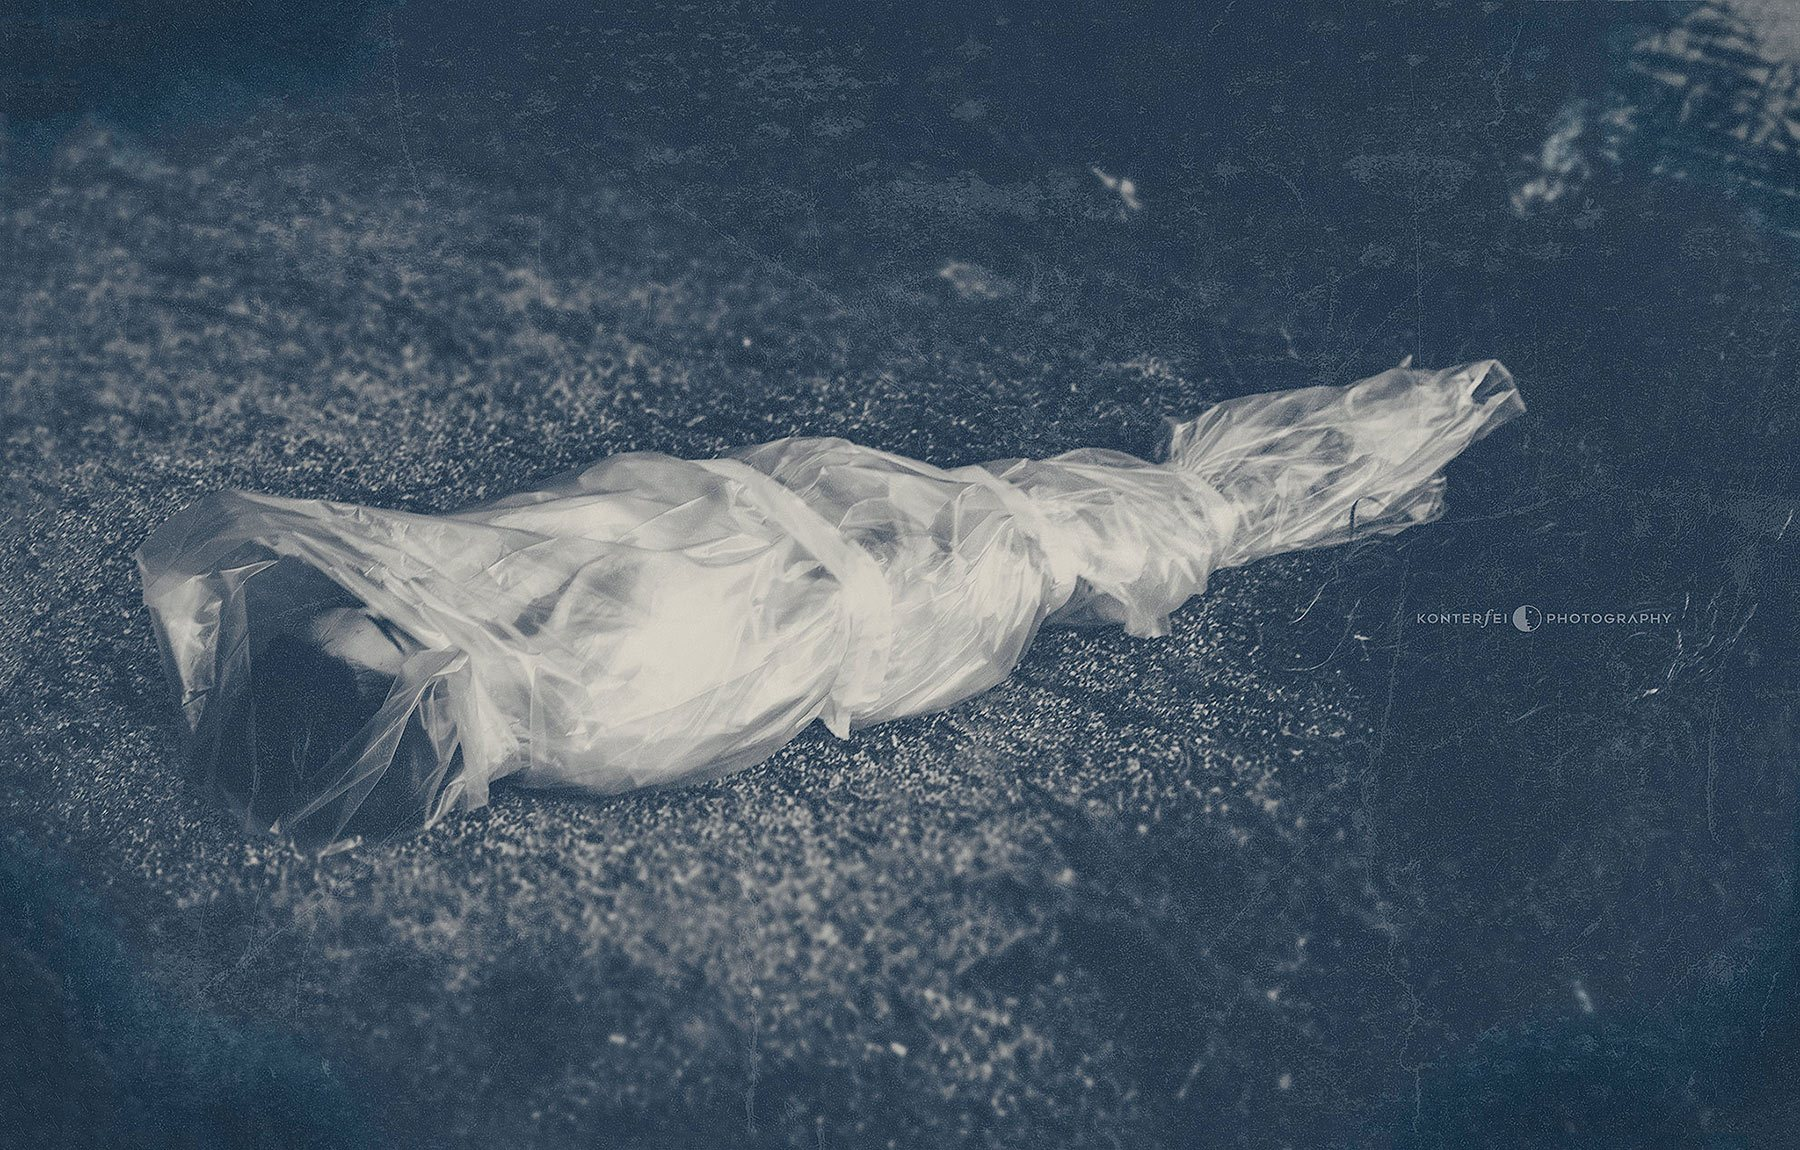 She's dead — wrapped in plastic | Dark Art | Photography